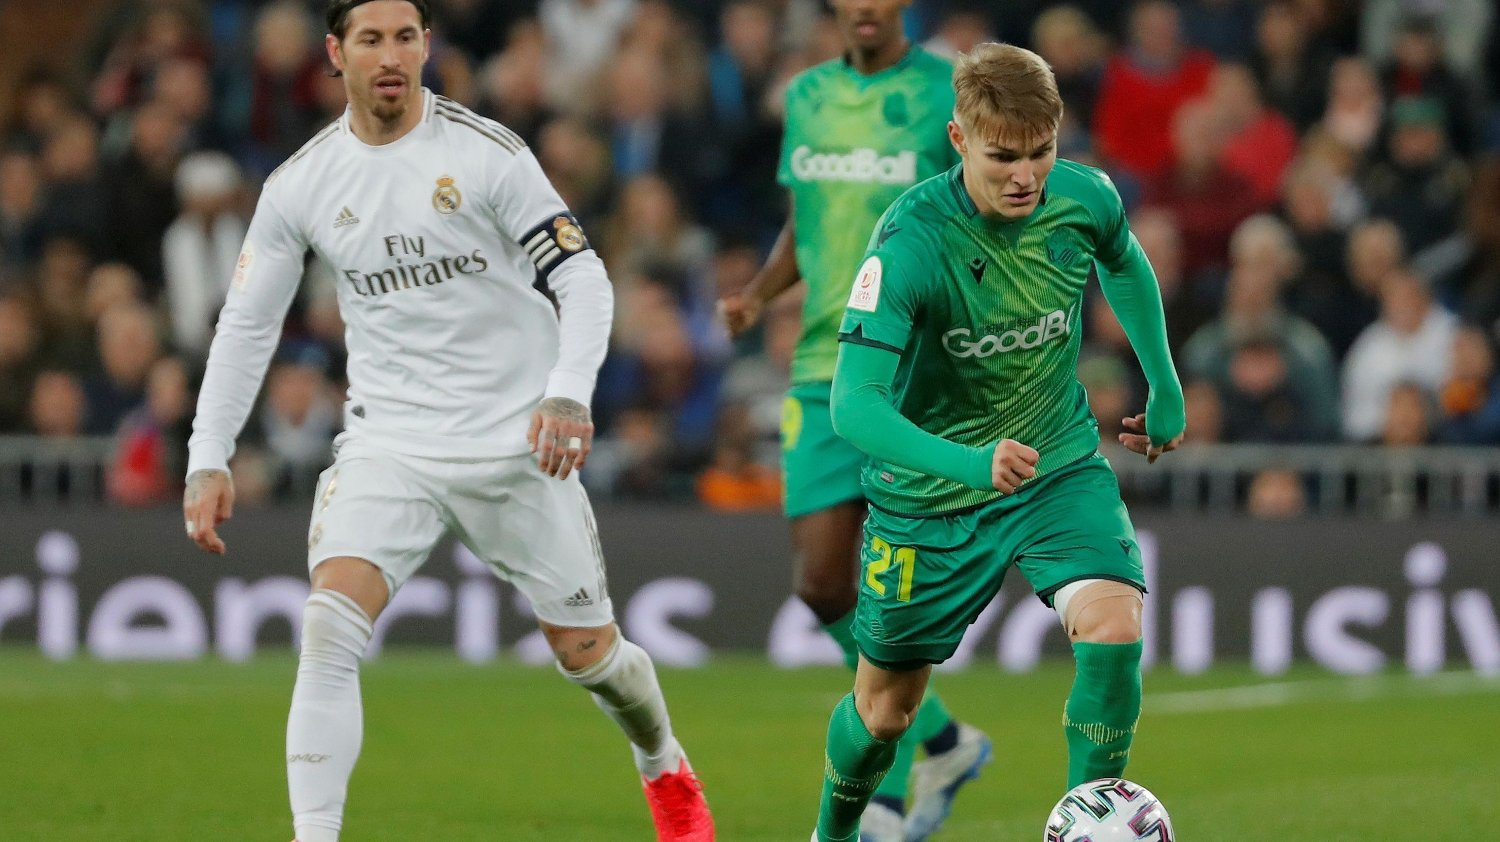 Soccer Football - Copa del Rey - Real Madrid v Real Sociedad - Santiago Bernabeu, Madrid, Spain - February 6, 2019 Real Sociedad's Martin Odegaard in action with Real Madrid's Sergio Ramos REUTERS/Susana Vera